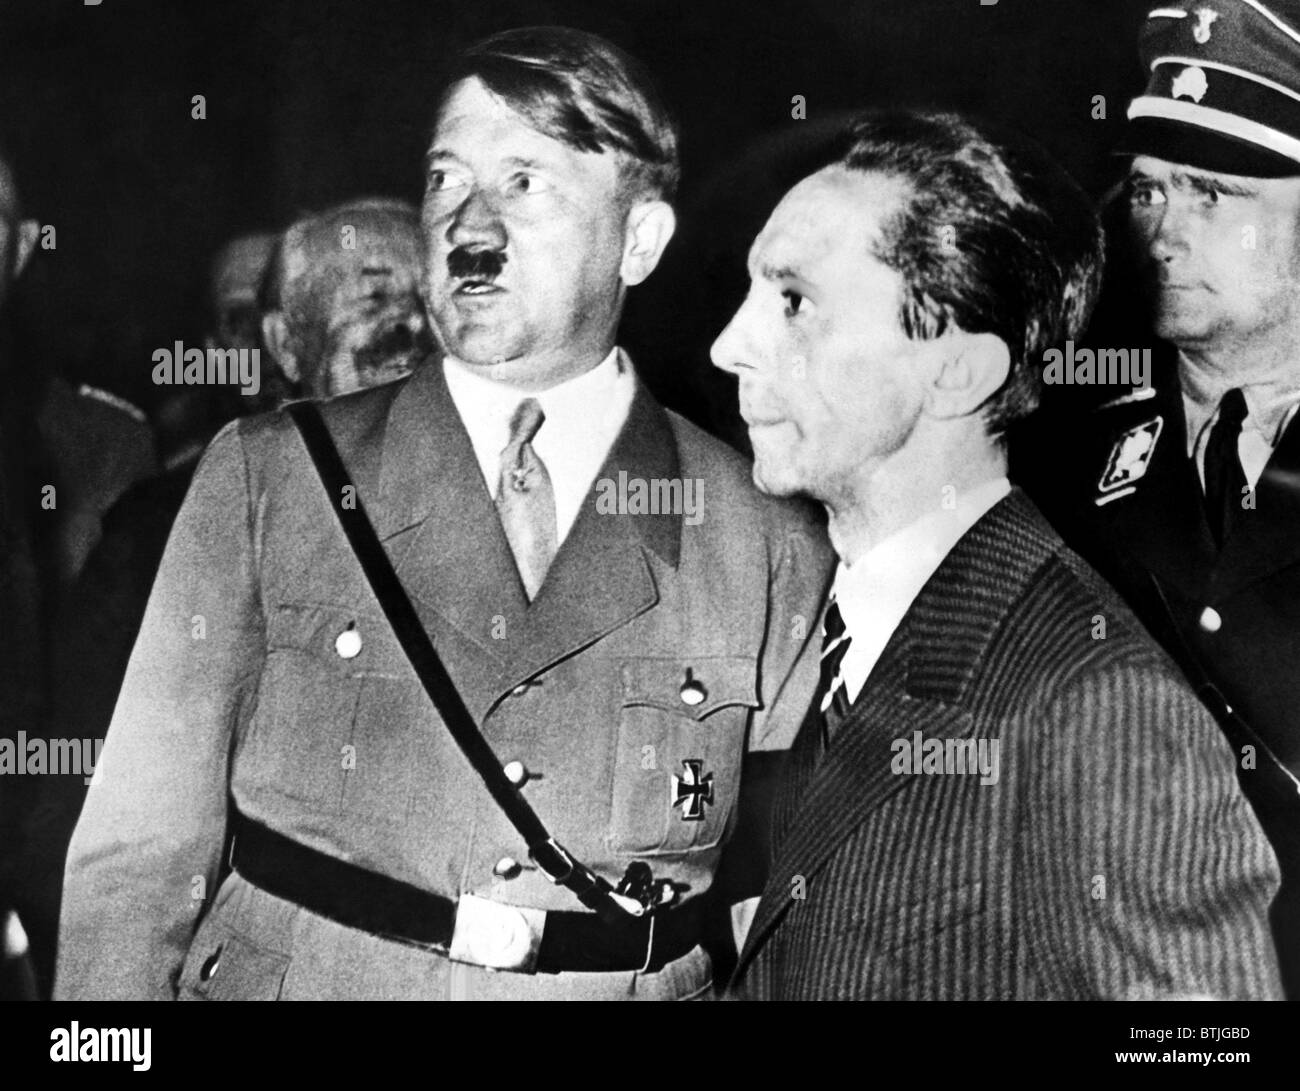 Adolf Hitler and Dr.Joseph Goebbels as they appeared at one of the 50 rallys held as part of the Nazi Election Campagin. - Stock Image